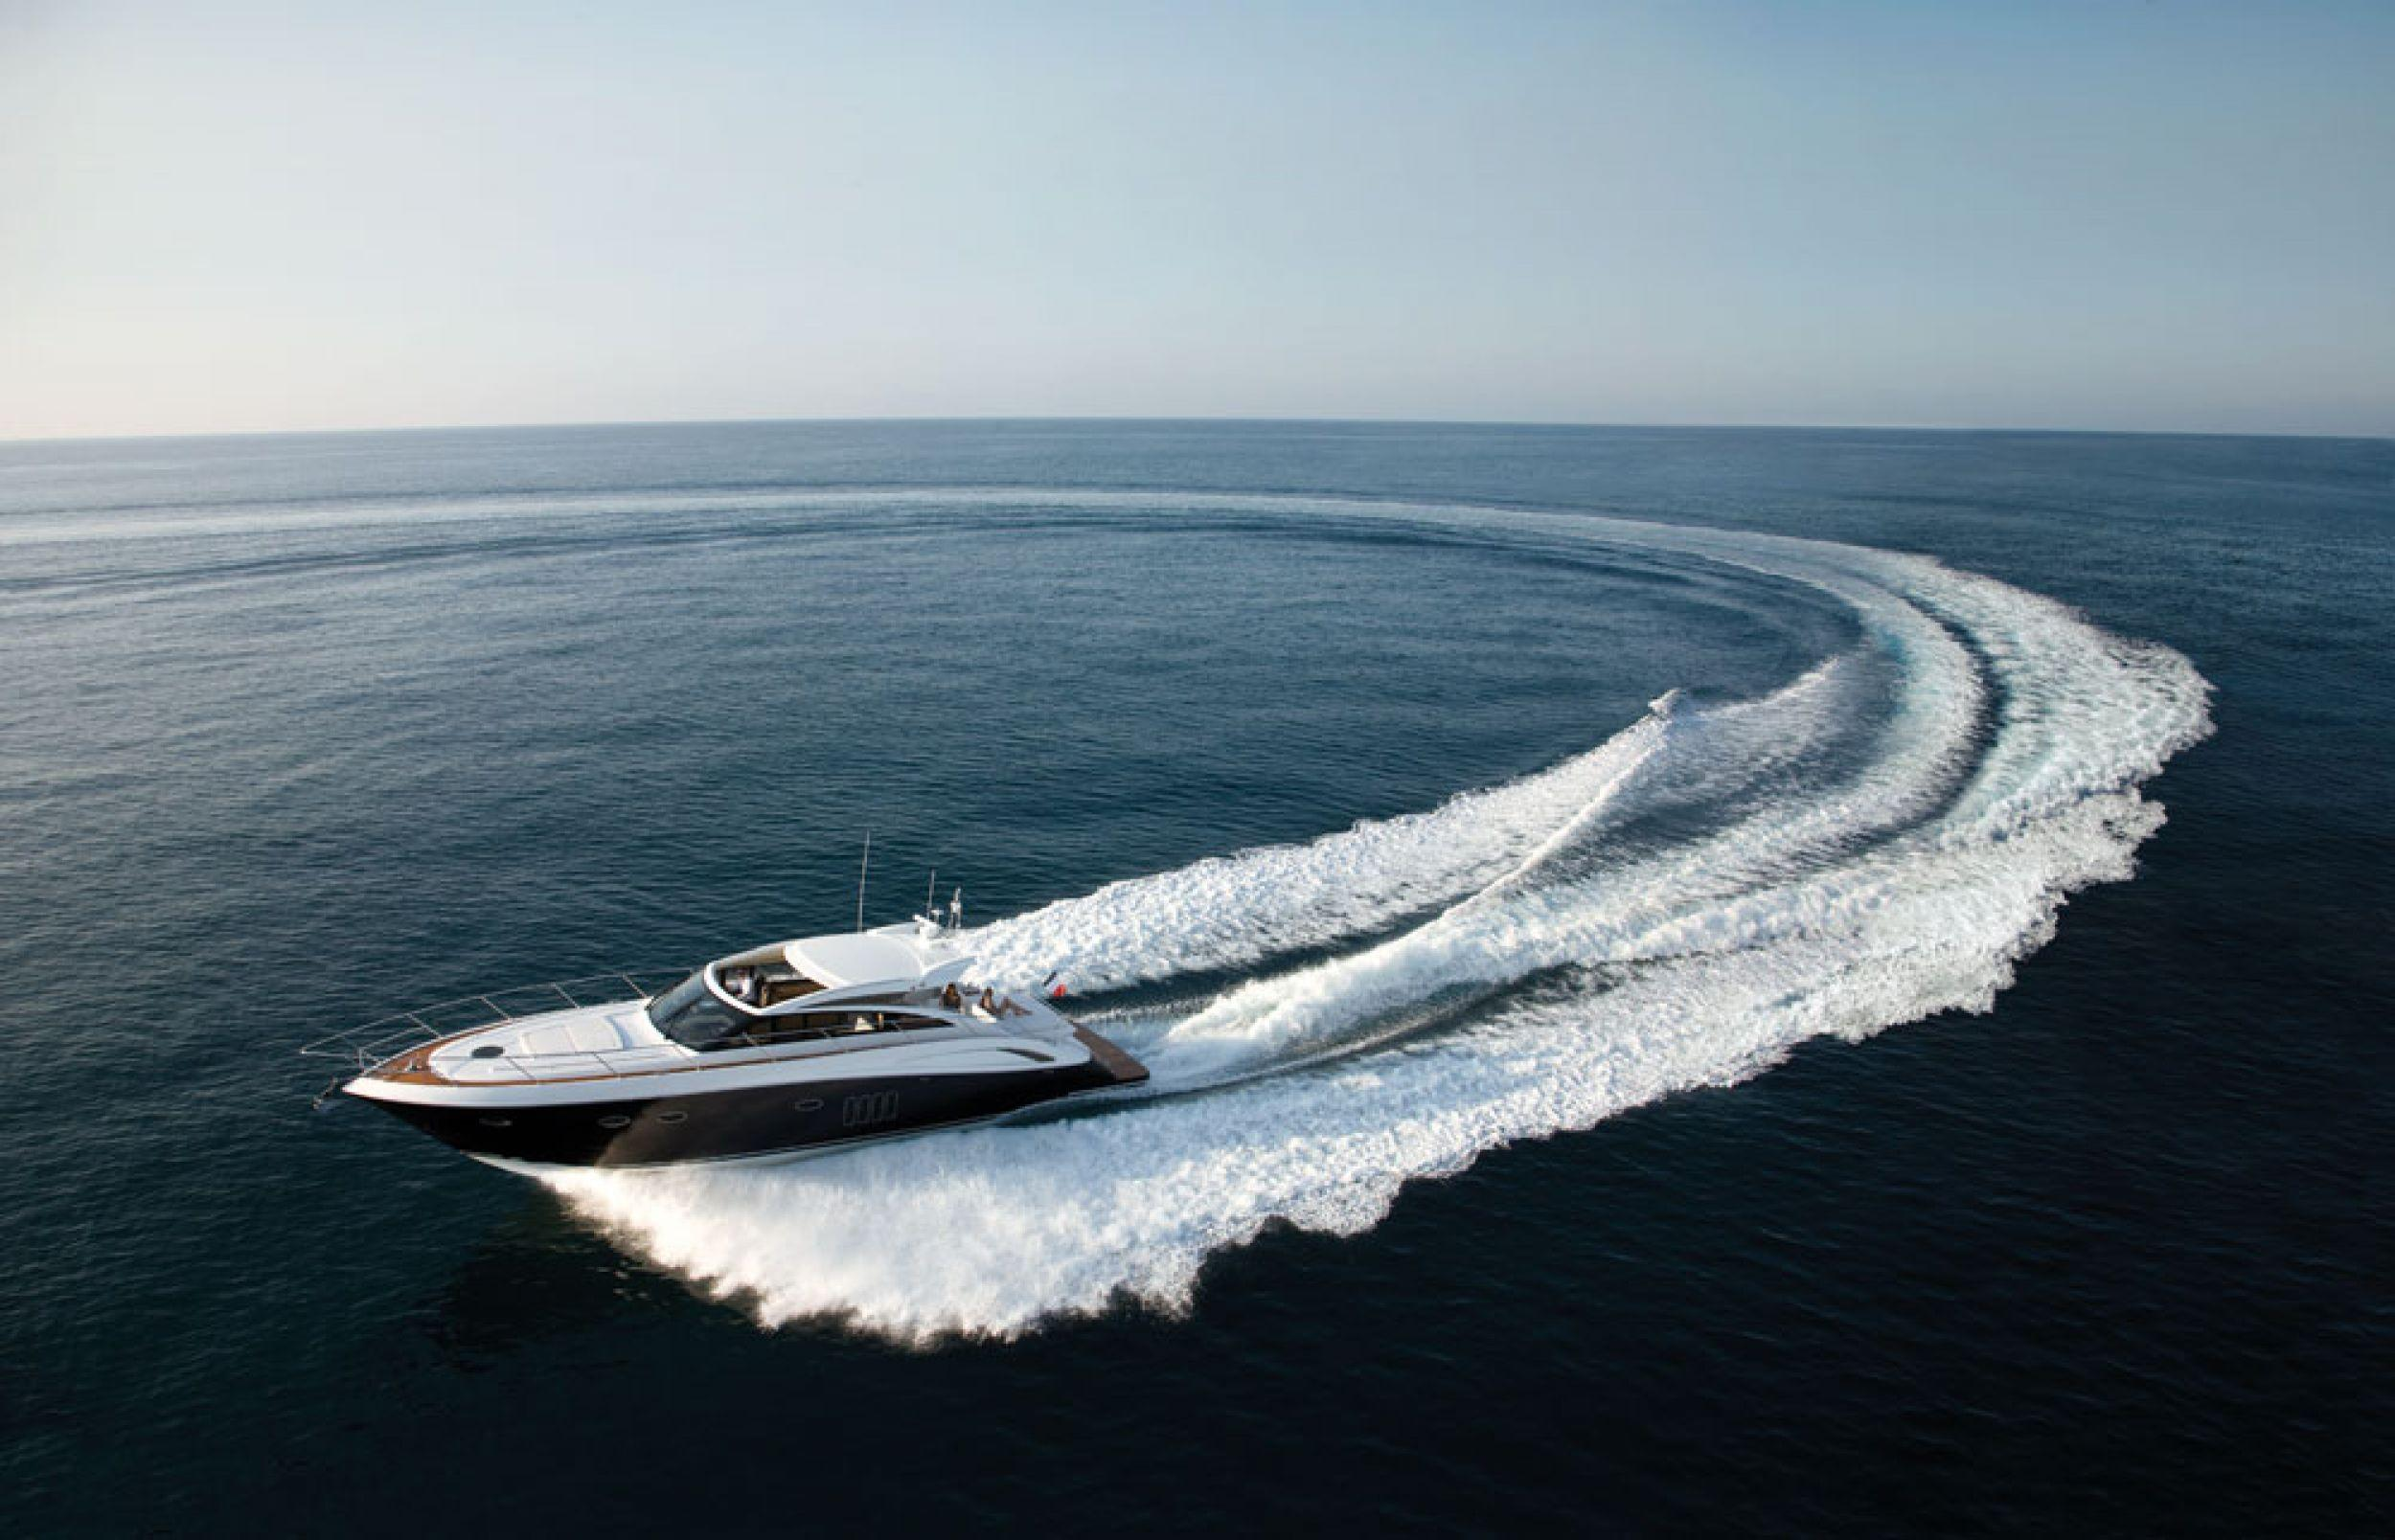 Yacht Wallpapers Full HD Download Wallpapers Pinterest Yachts